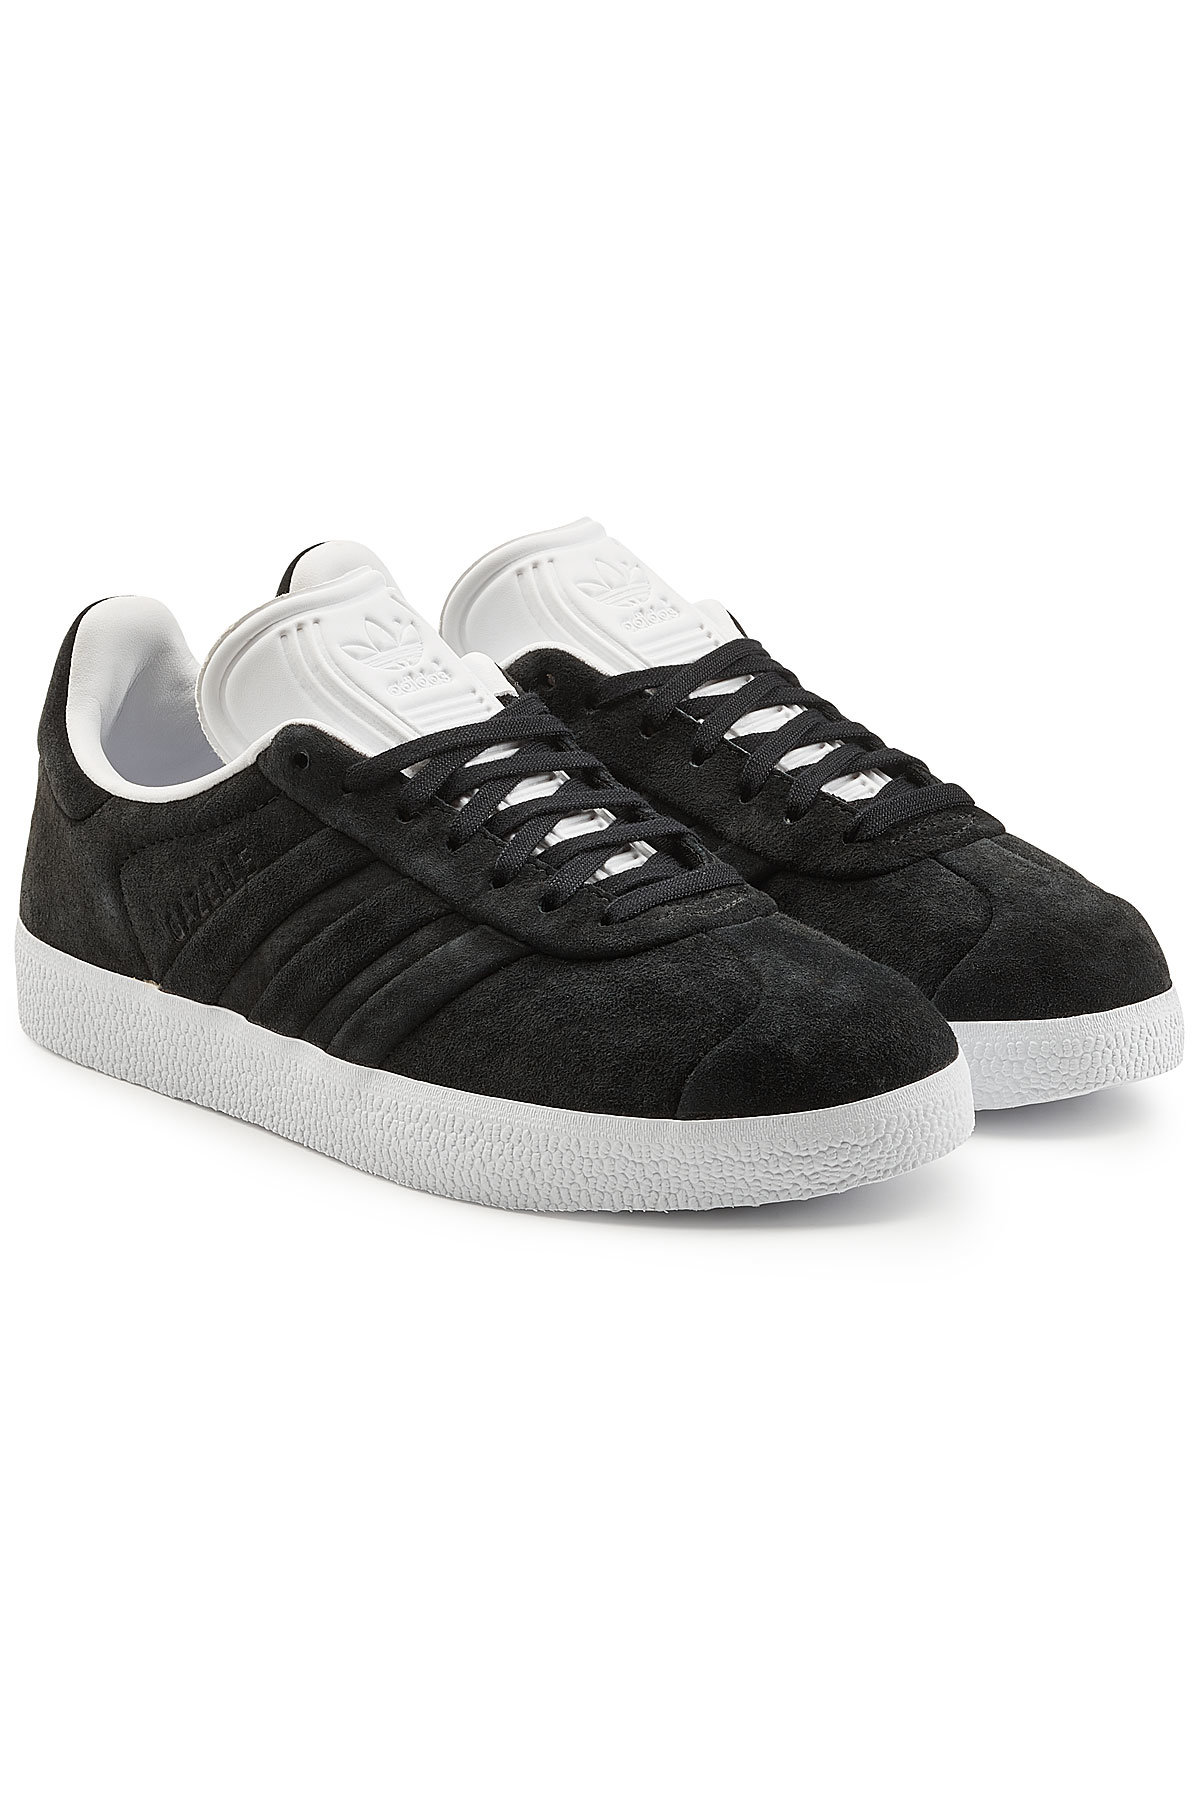 adidas Gazelle Stitch and Turn Suede Sneakers Gr. UK 7 4CsYy